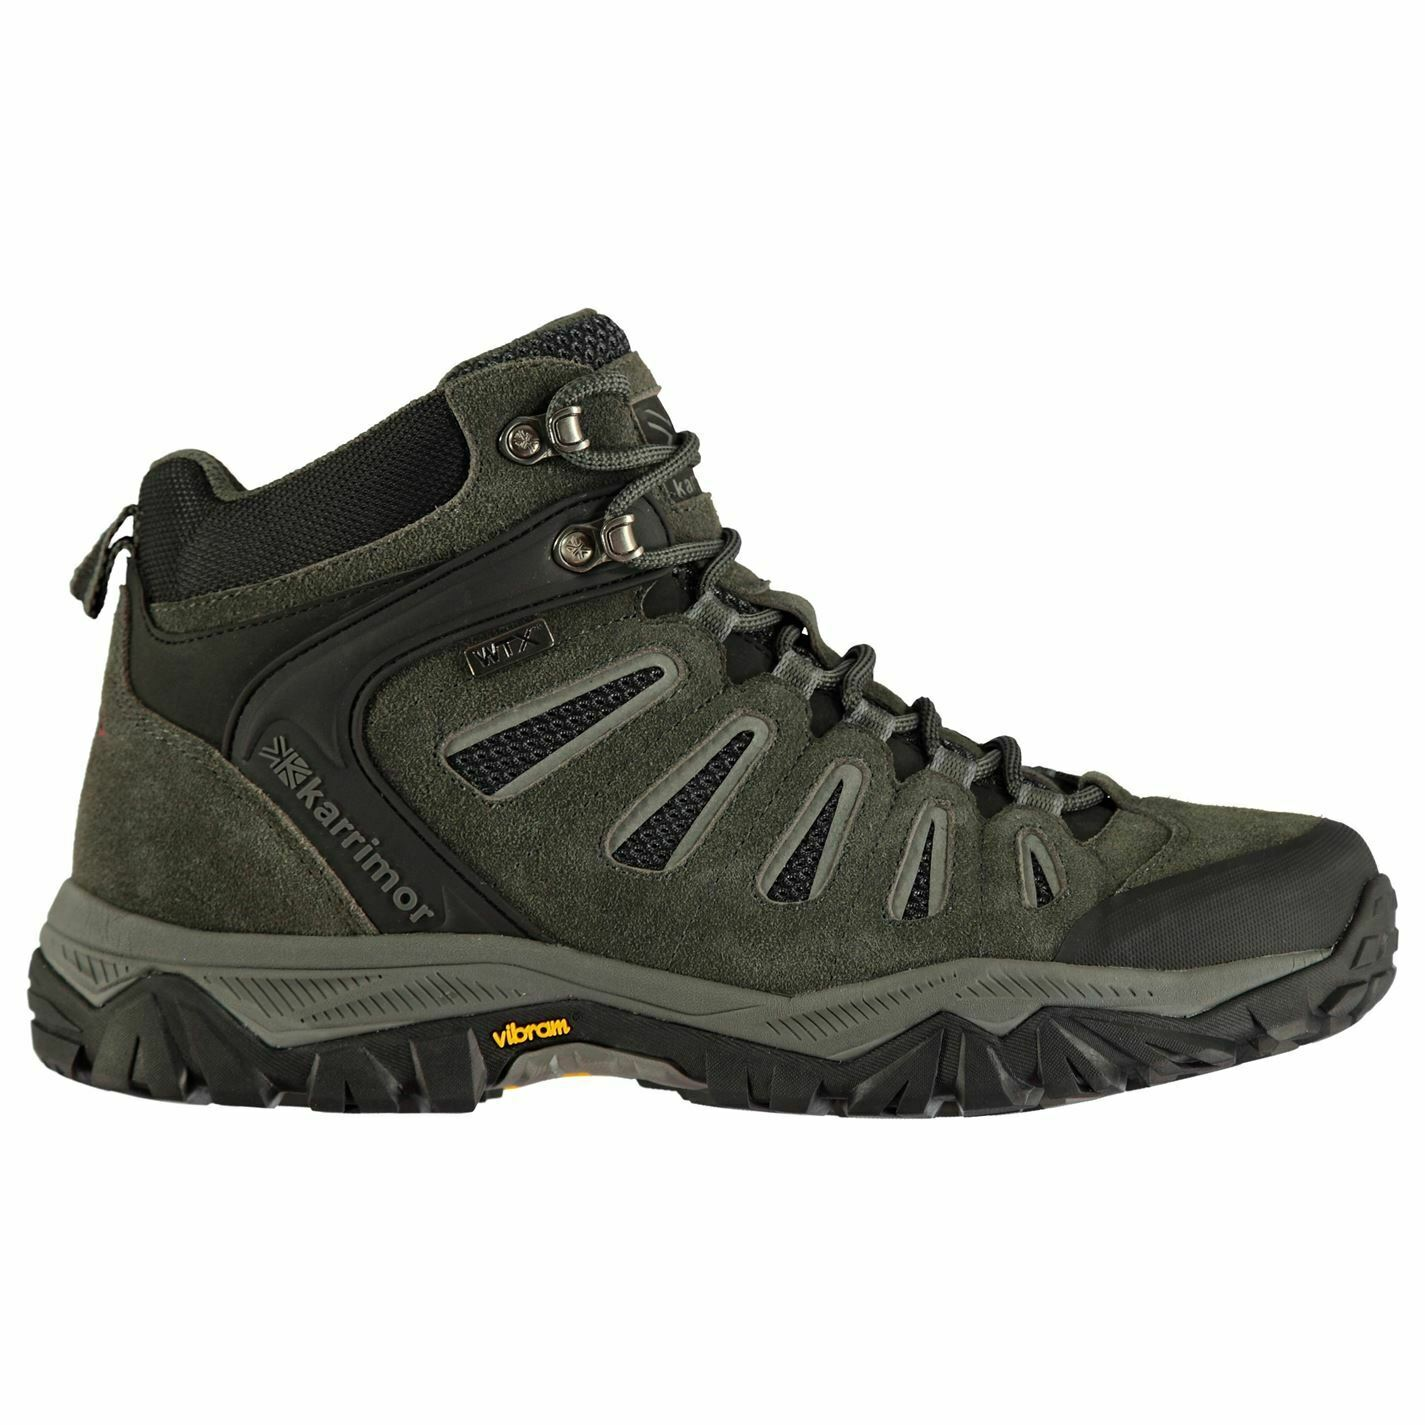 Karrimor uomo Wildcat Mid Walre stivali Lace Up Breakable Padded Ankle Collar